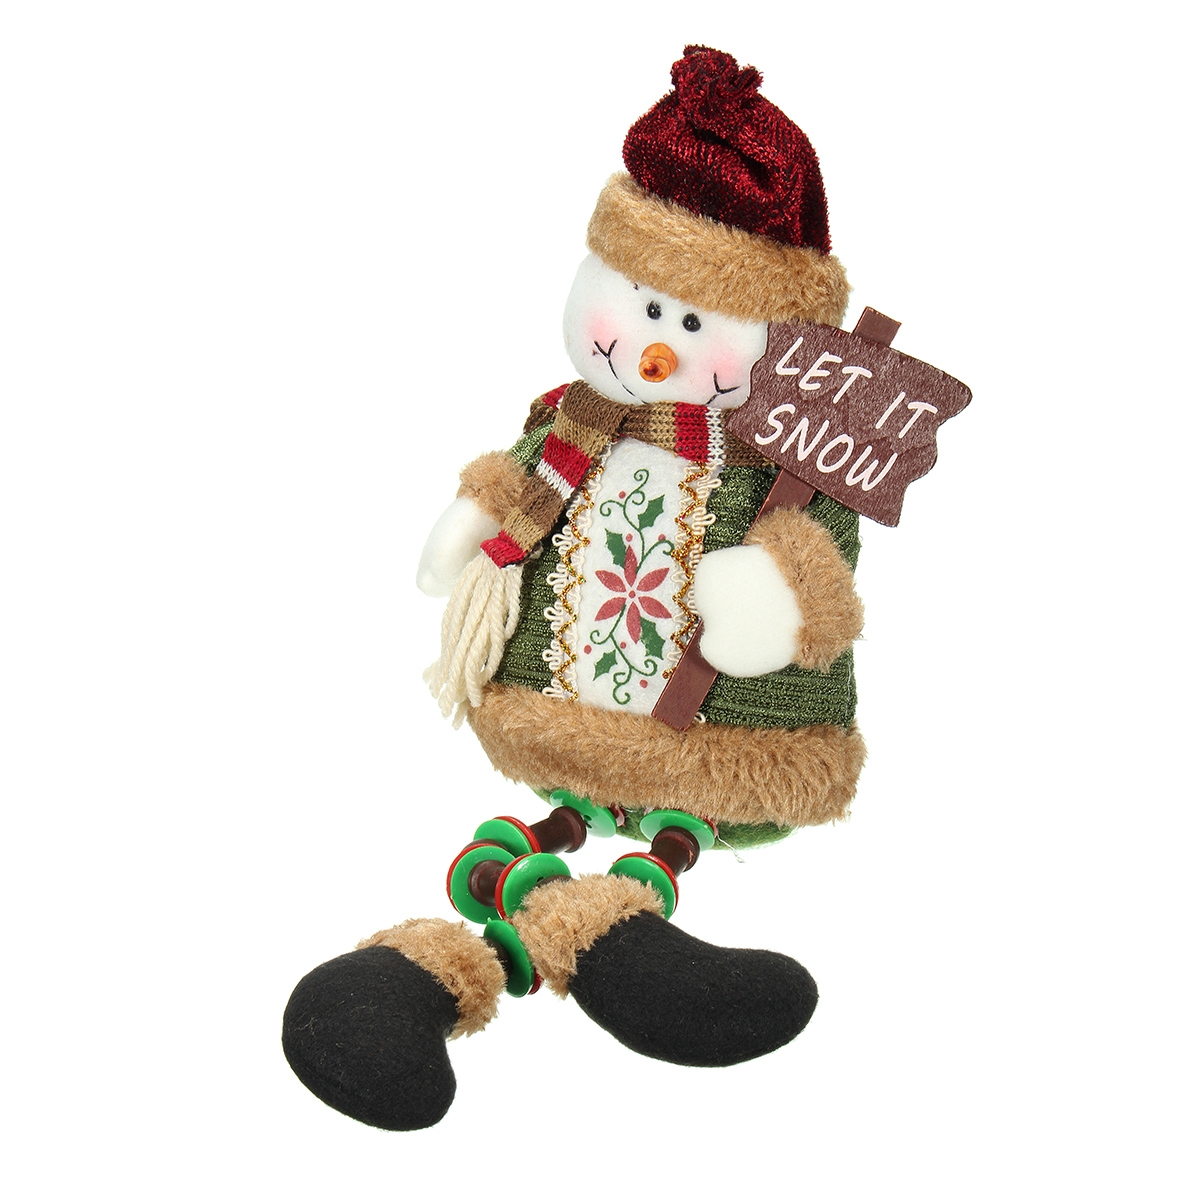 Christmas Home Decoration Sitting Cute Snowman Ornament Flannel Toy Gift